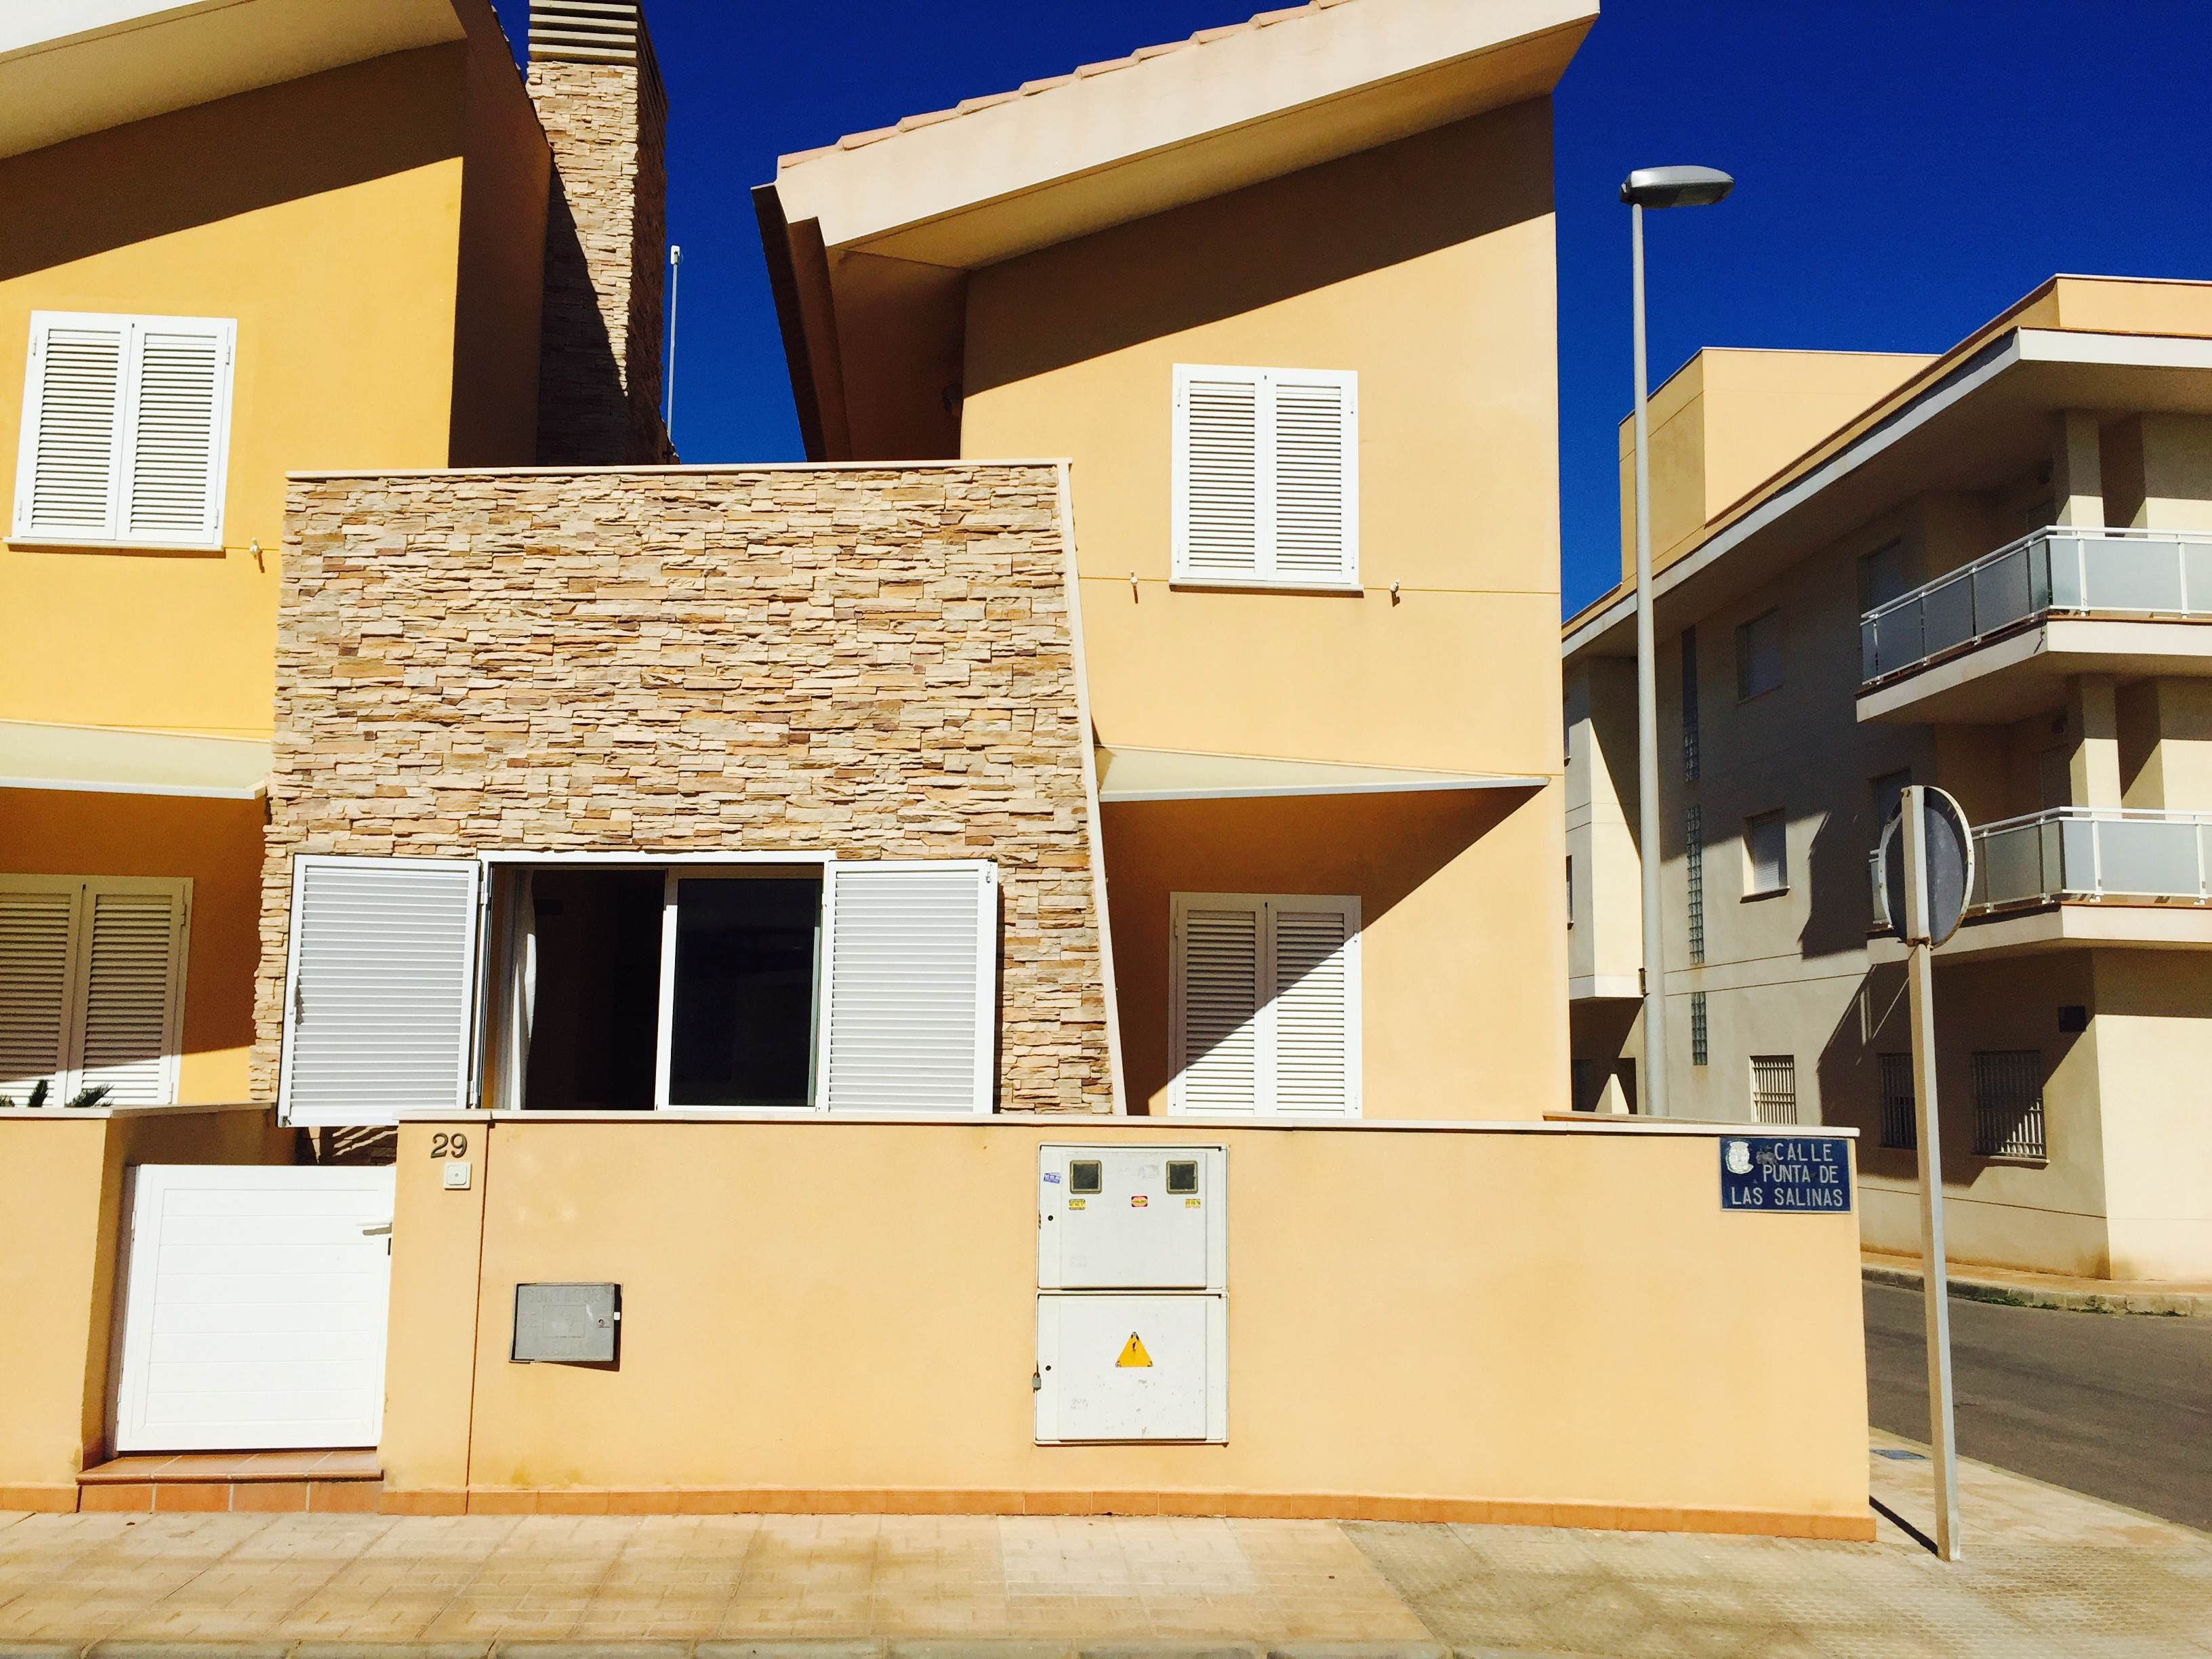 3 bedroom duplex in Cabo de Palos